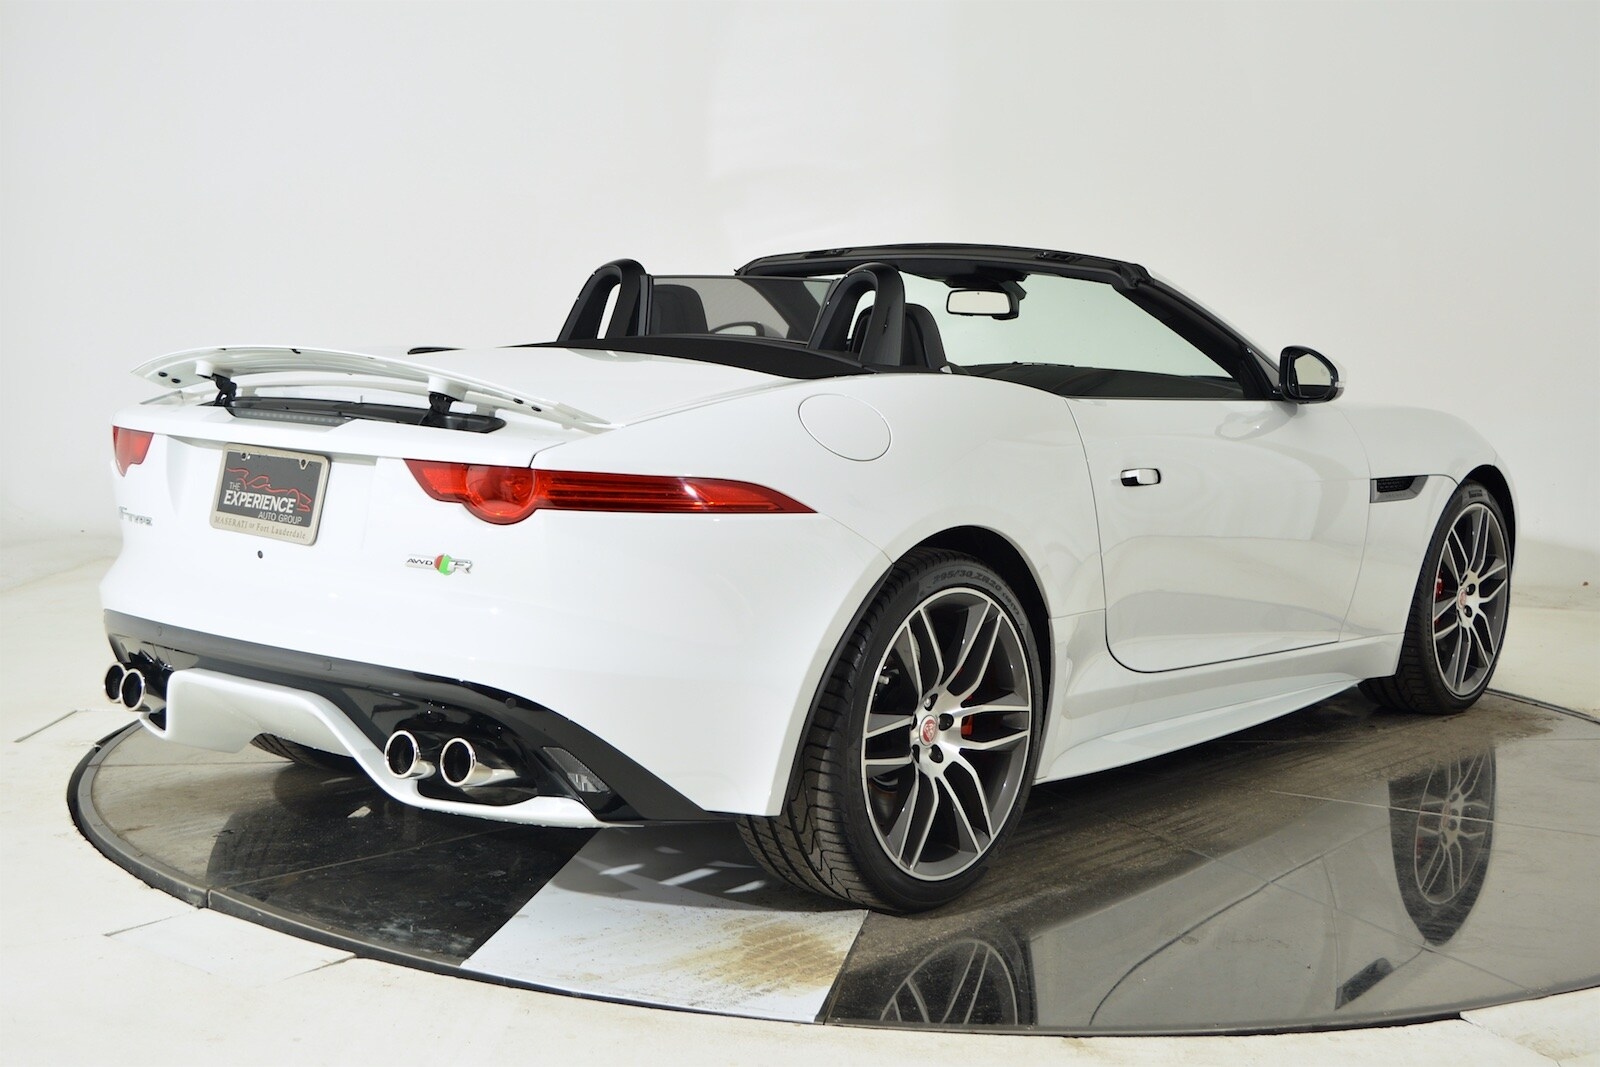 used 2016 jaguar f type r convertible in white for sale ferrari of fort lauderdale. Black Bedroom Furniture Sets. Home Design Ideas